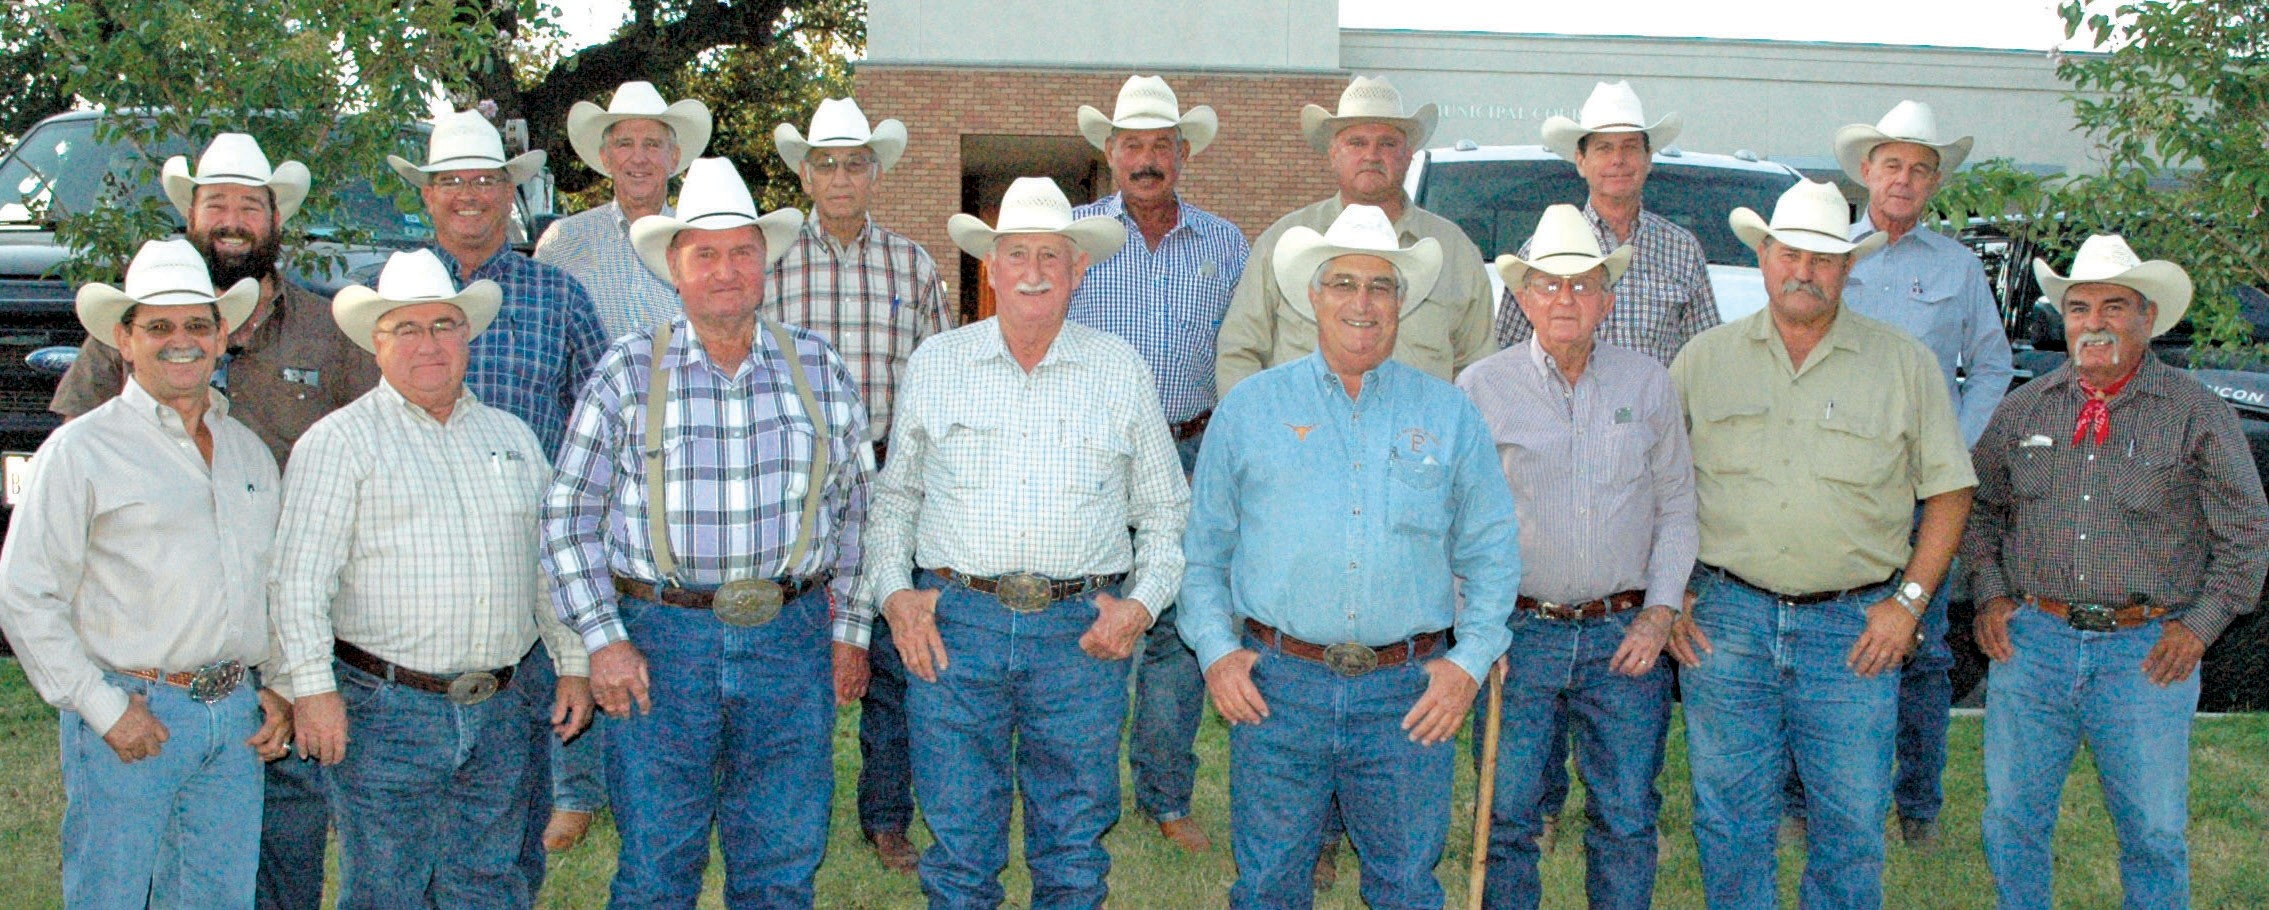 Each year the former Cowboys of the Year gather at the Pleasanton Express to choose the next recipient as well as the new inductees into the South Texas Cowboy Hall of Fame. Front row, left to right, are Committee Chairman Joel McDaniel ('90), David Kaiser ('09), Charles Maddox ('87), Robert Bryan (84), Mickie Clark ('03), Tommy Henry ('86), Leroy Krueger ('00) and Roy Alonzo ('13). Back row are Clint Hindes ('01), David McDaniel ('97), Johnny Schrutka ('05), Benny Zuniga ('91), Gilbert Gonzales ('92), Darryl Ashley ('94), Roy Hindes III ('04) and Billy Wayne Kaiser ('07).